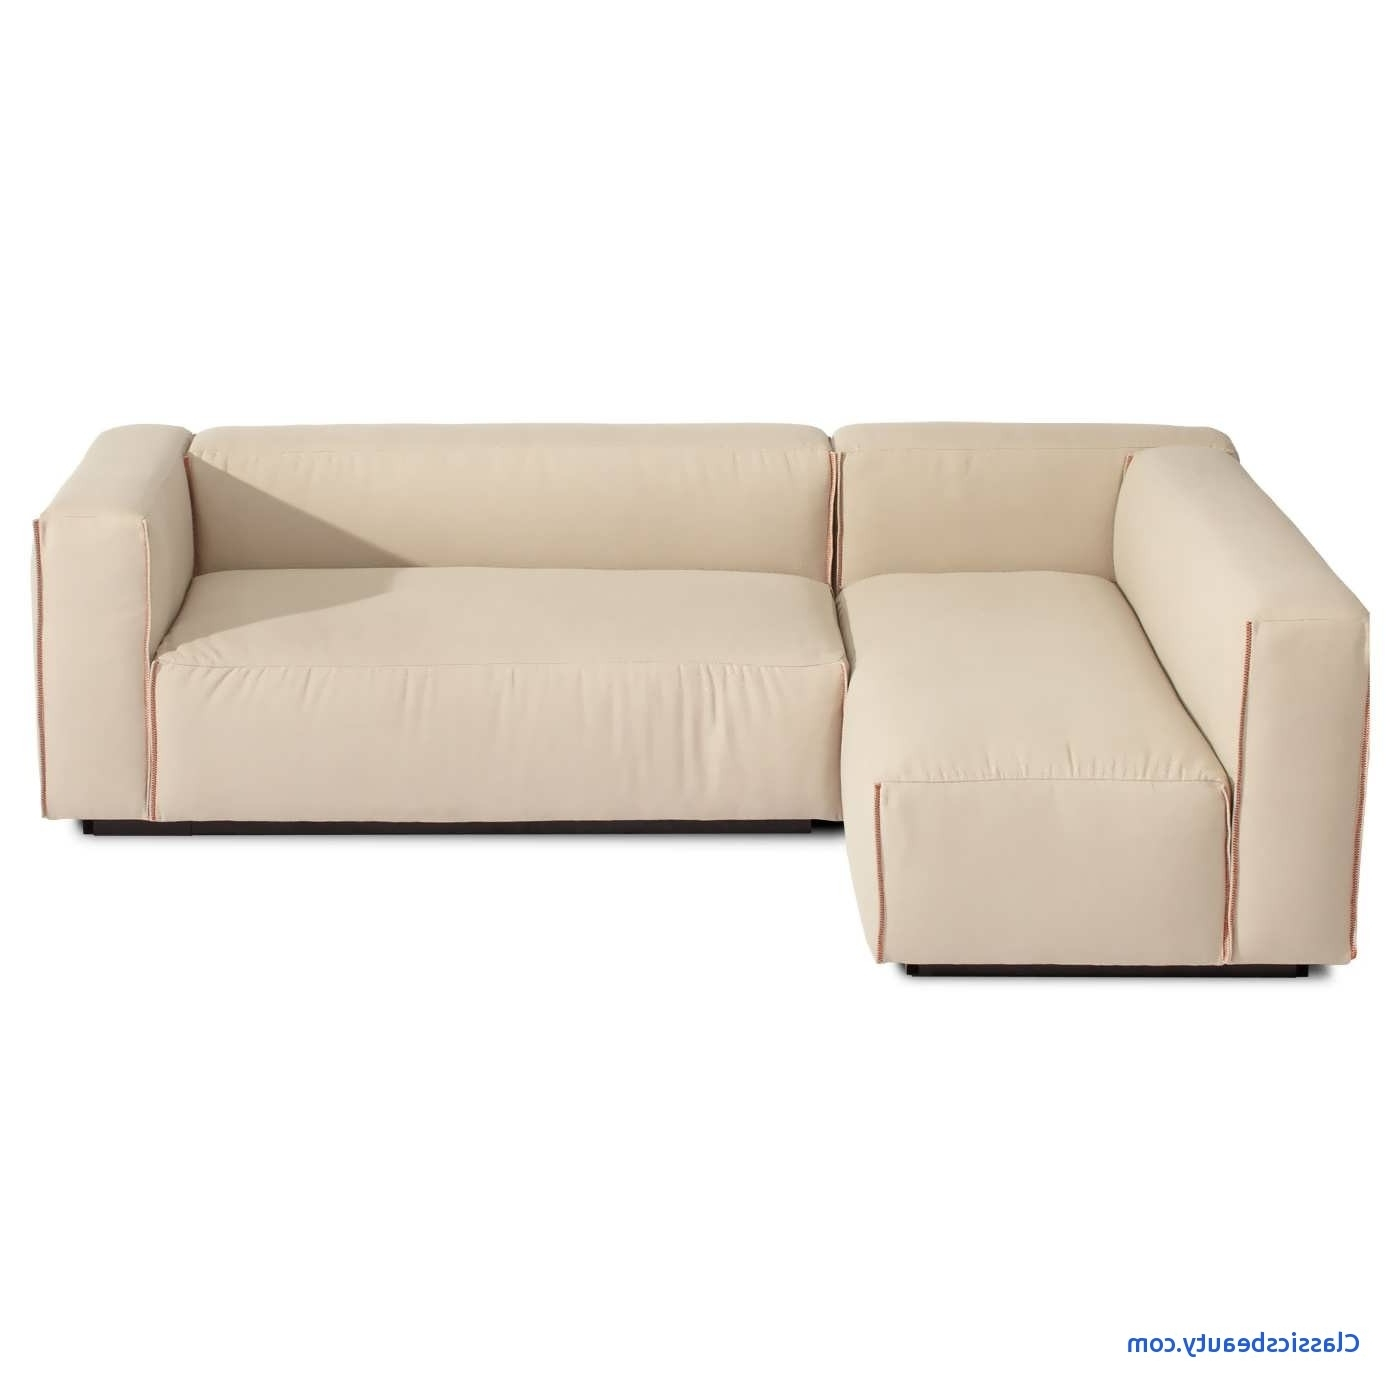 Favorite Small Sofas Elegant Sofa Corner Sofa Sectional Sleeper Sofa Chaise For Small Chaise Sofas (View 5 of 15)